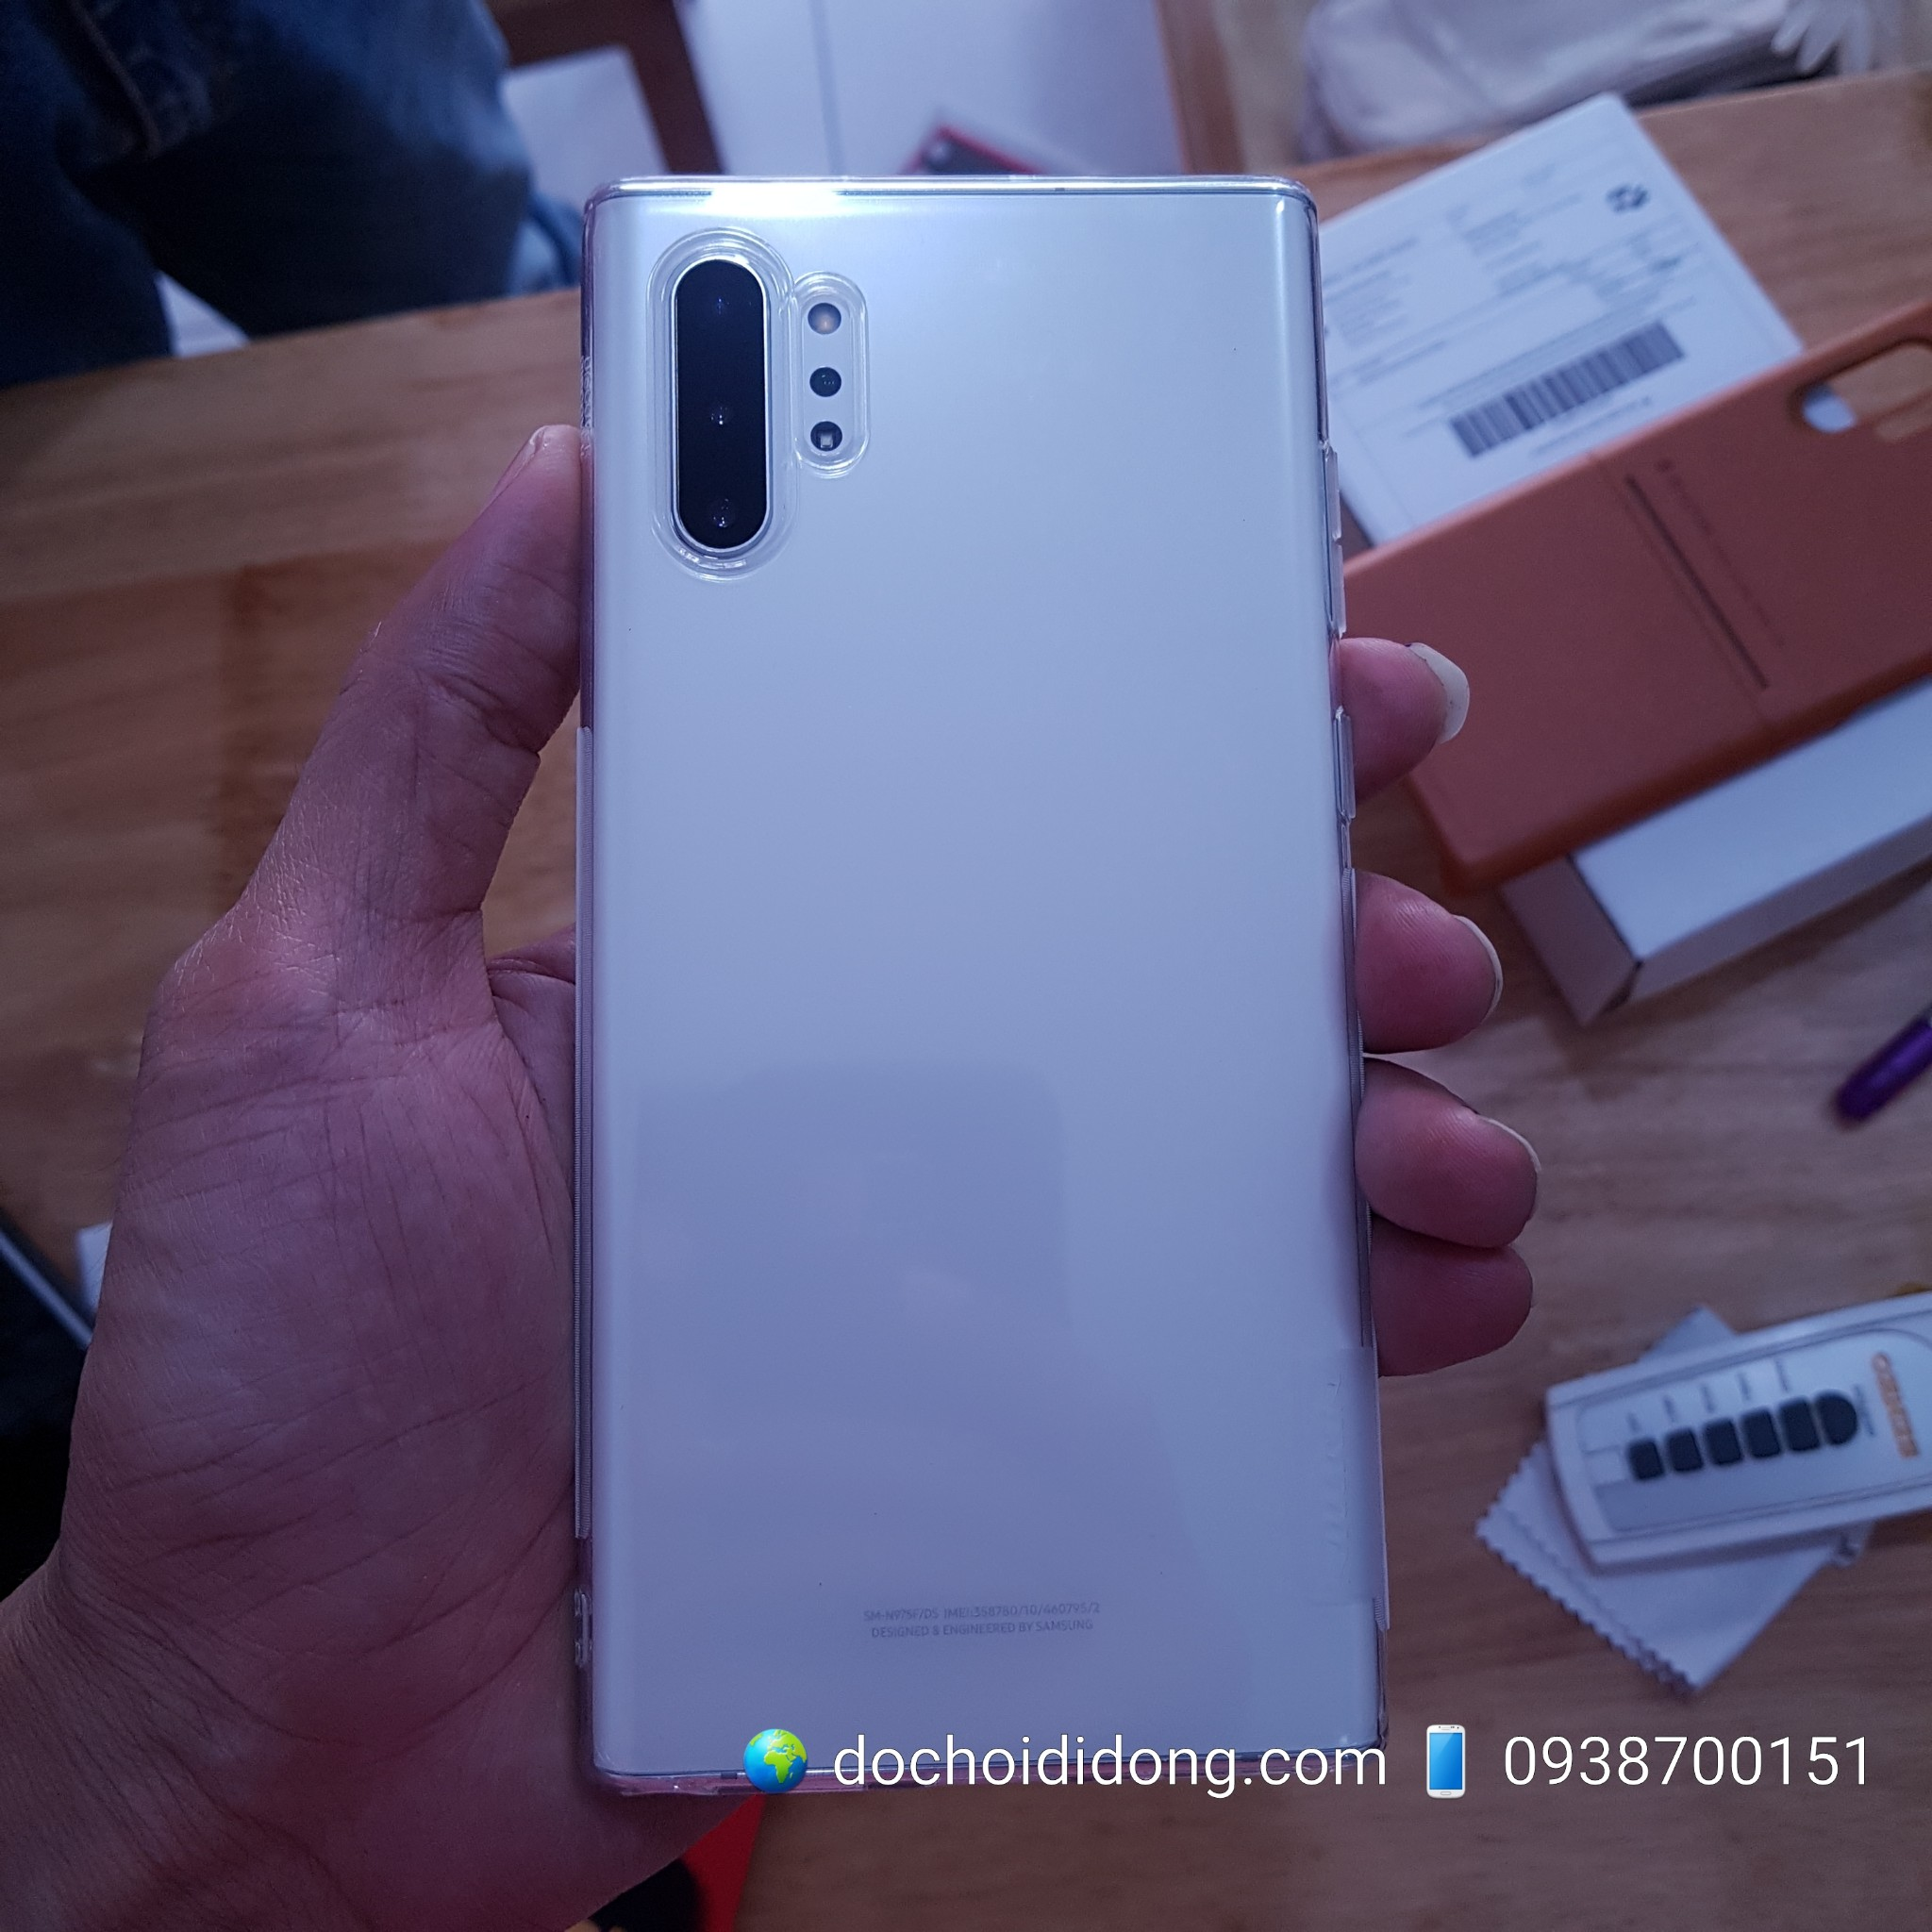 op-lung-samsung-note-10-note-10-plus-nillkin-deo-trong